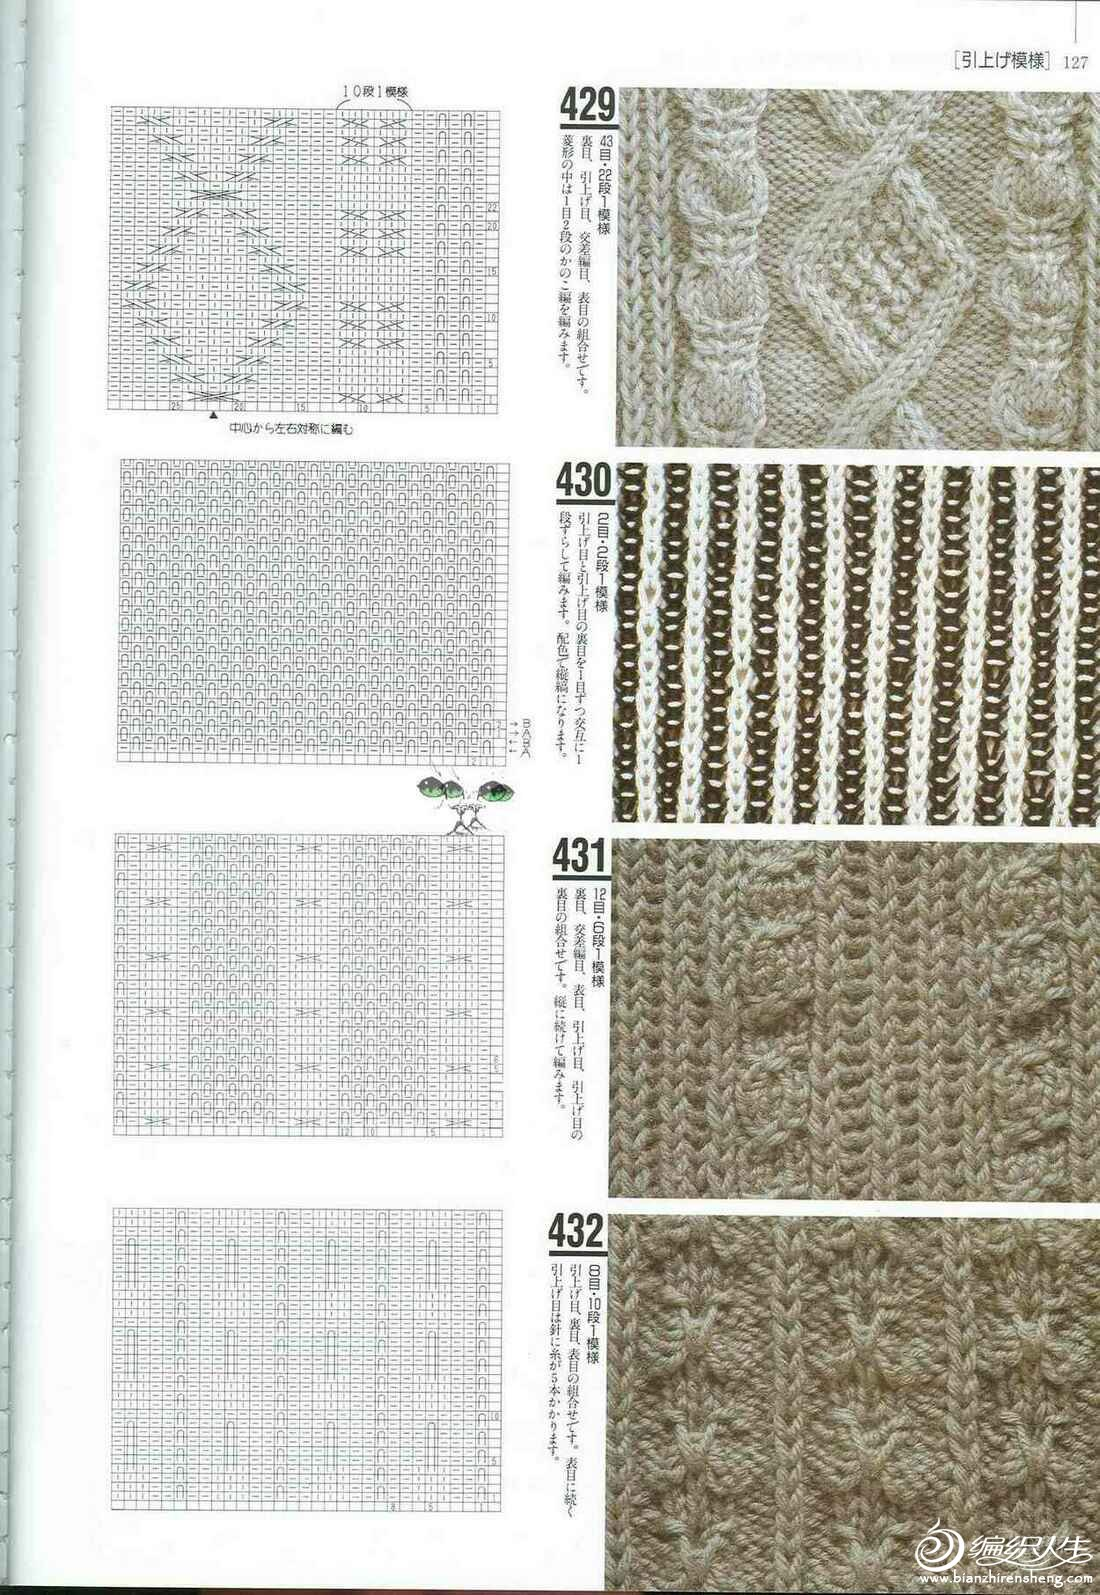 Knitting Patterns 500 124.jpg